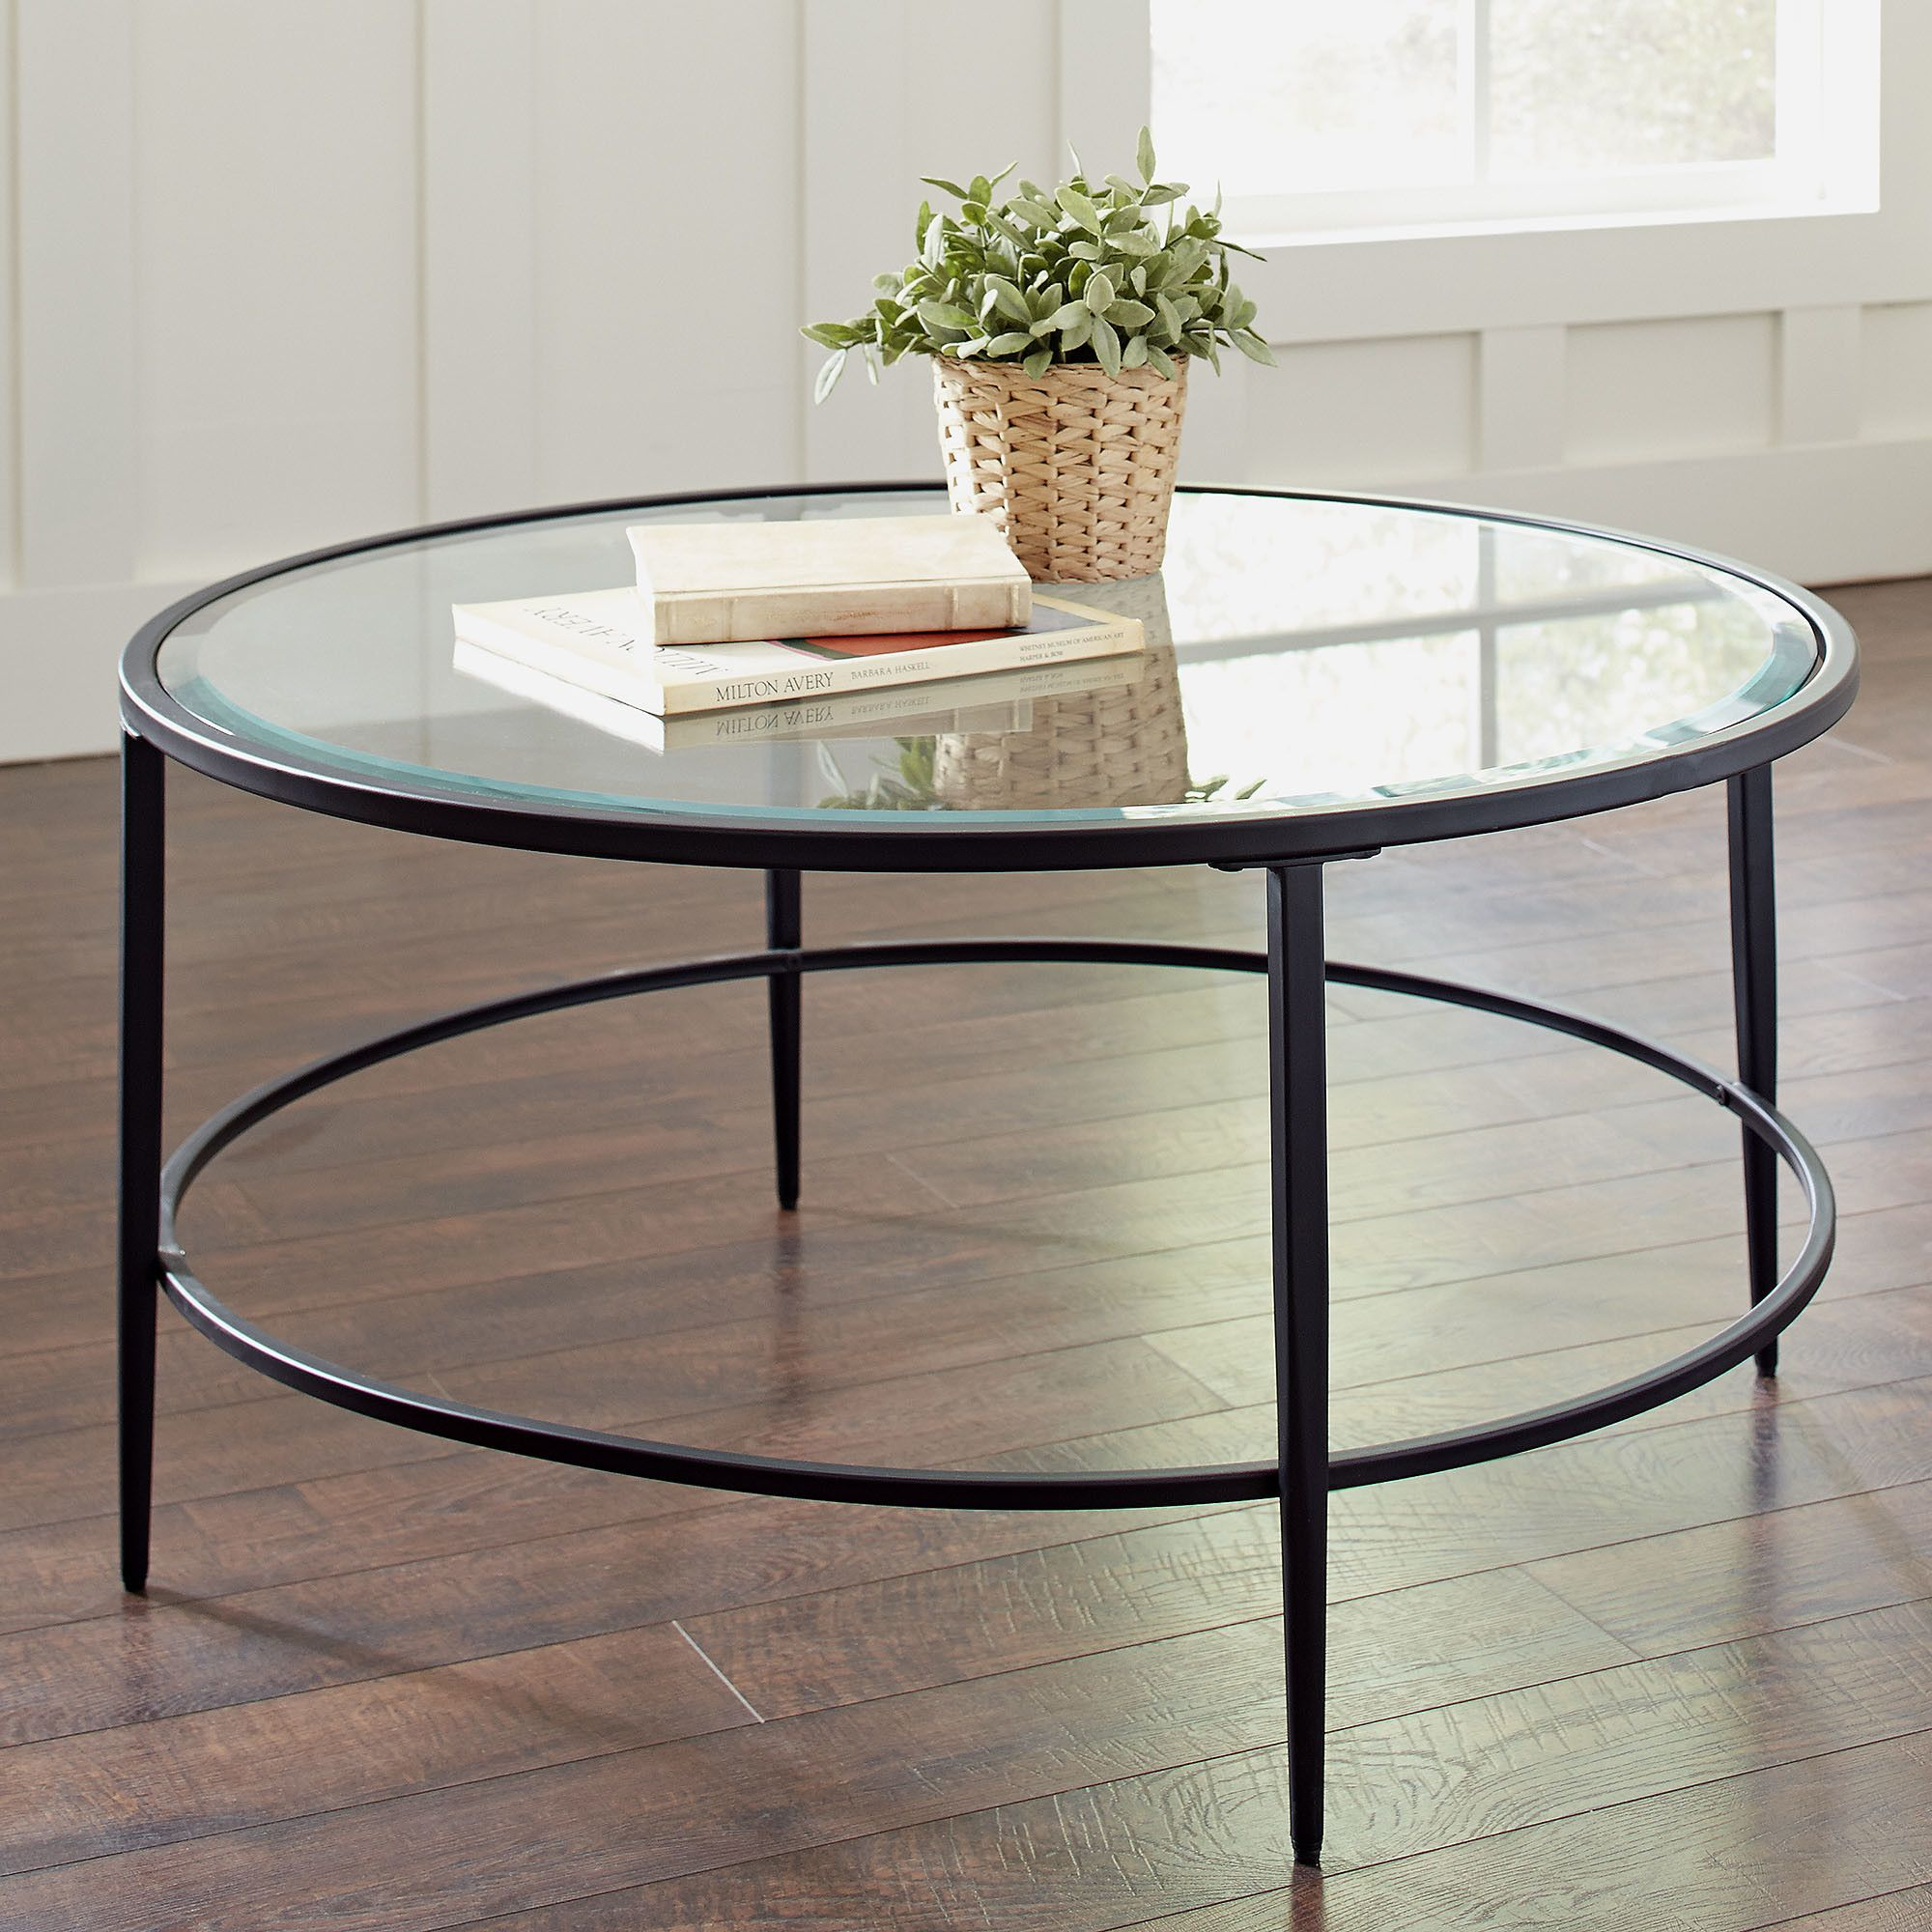 Customer Image Zoomed Circle Coffee Tables Round Glass Coffee Table Round Coffee Table [ 2000 x 2000 Pixel ]